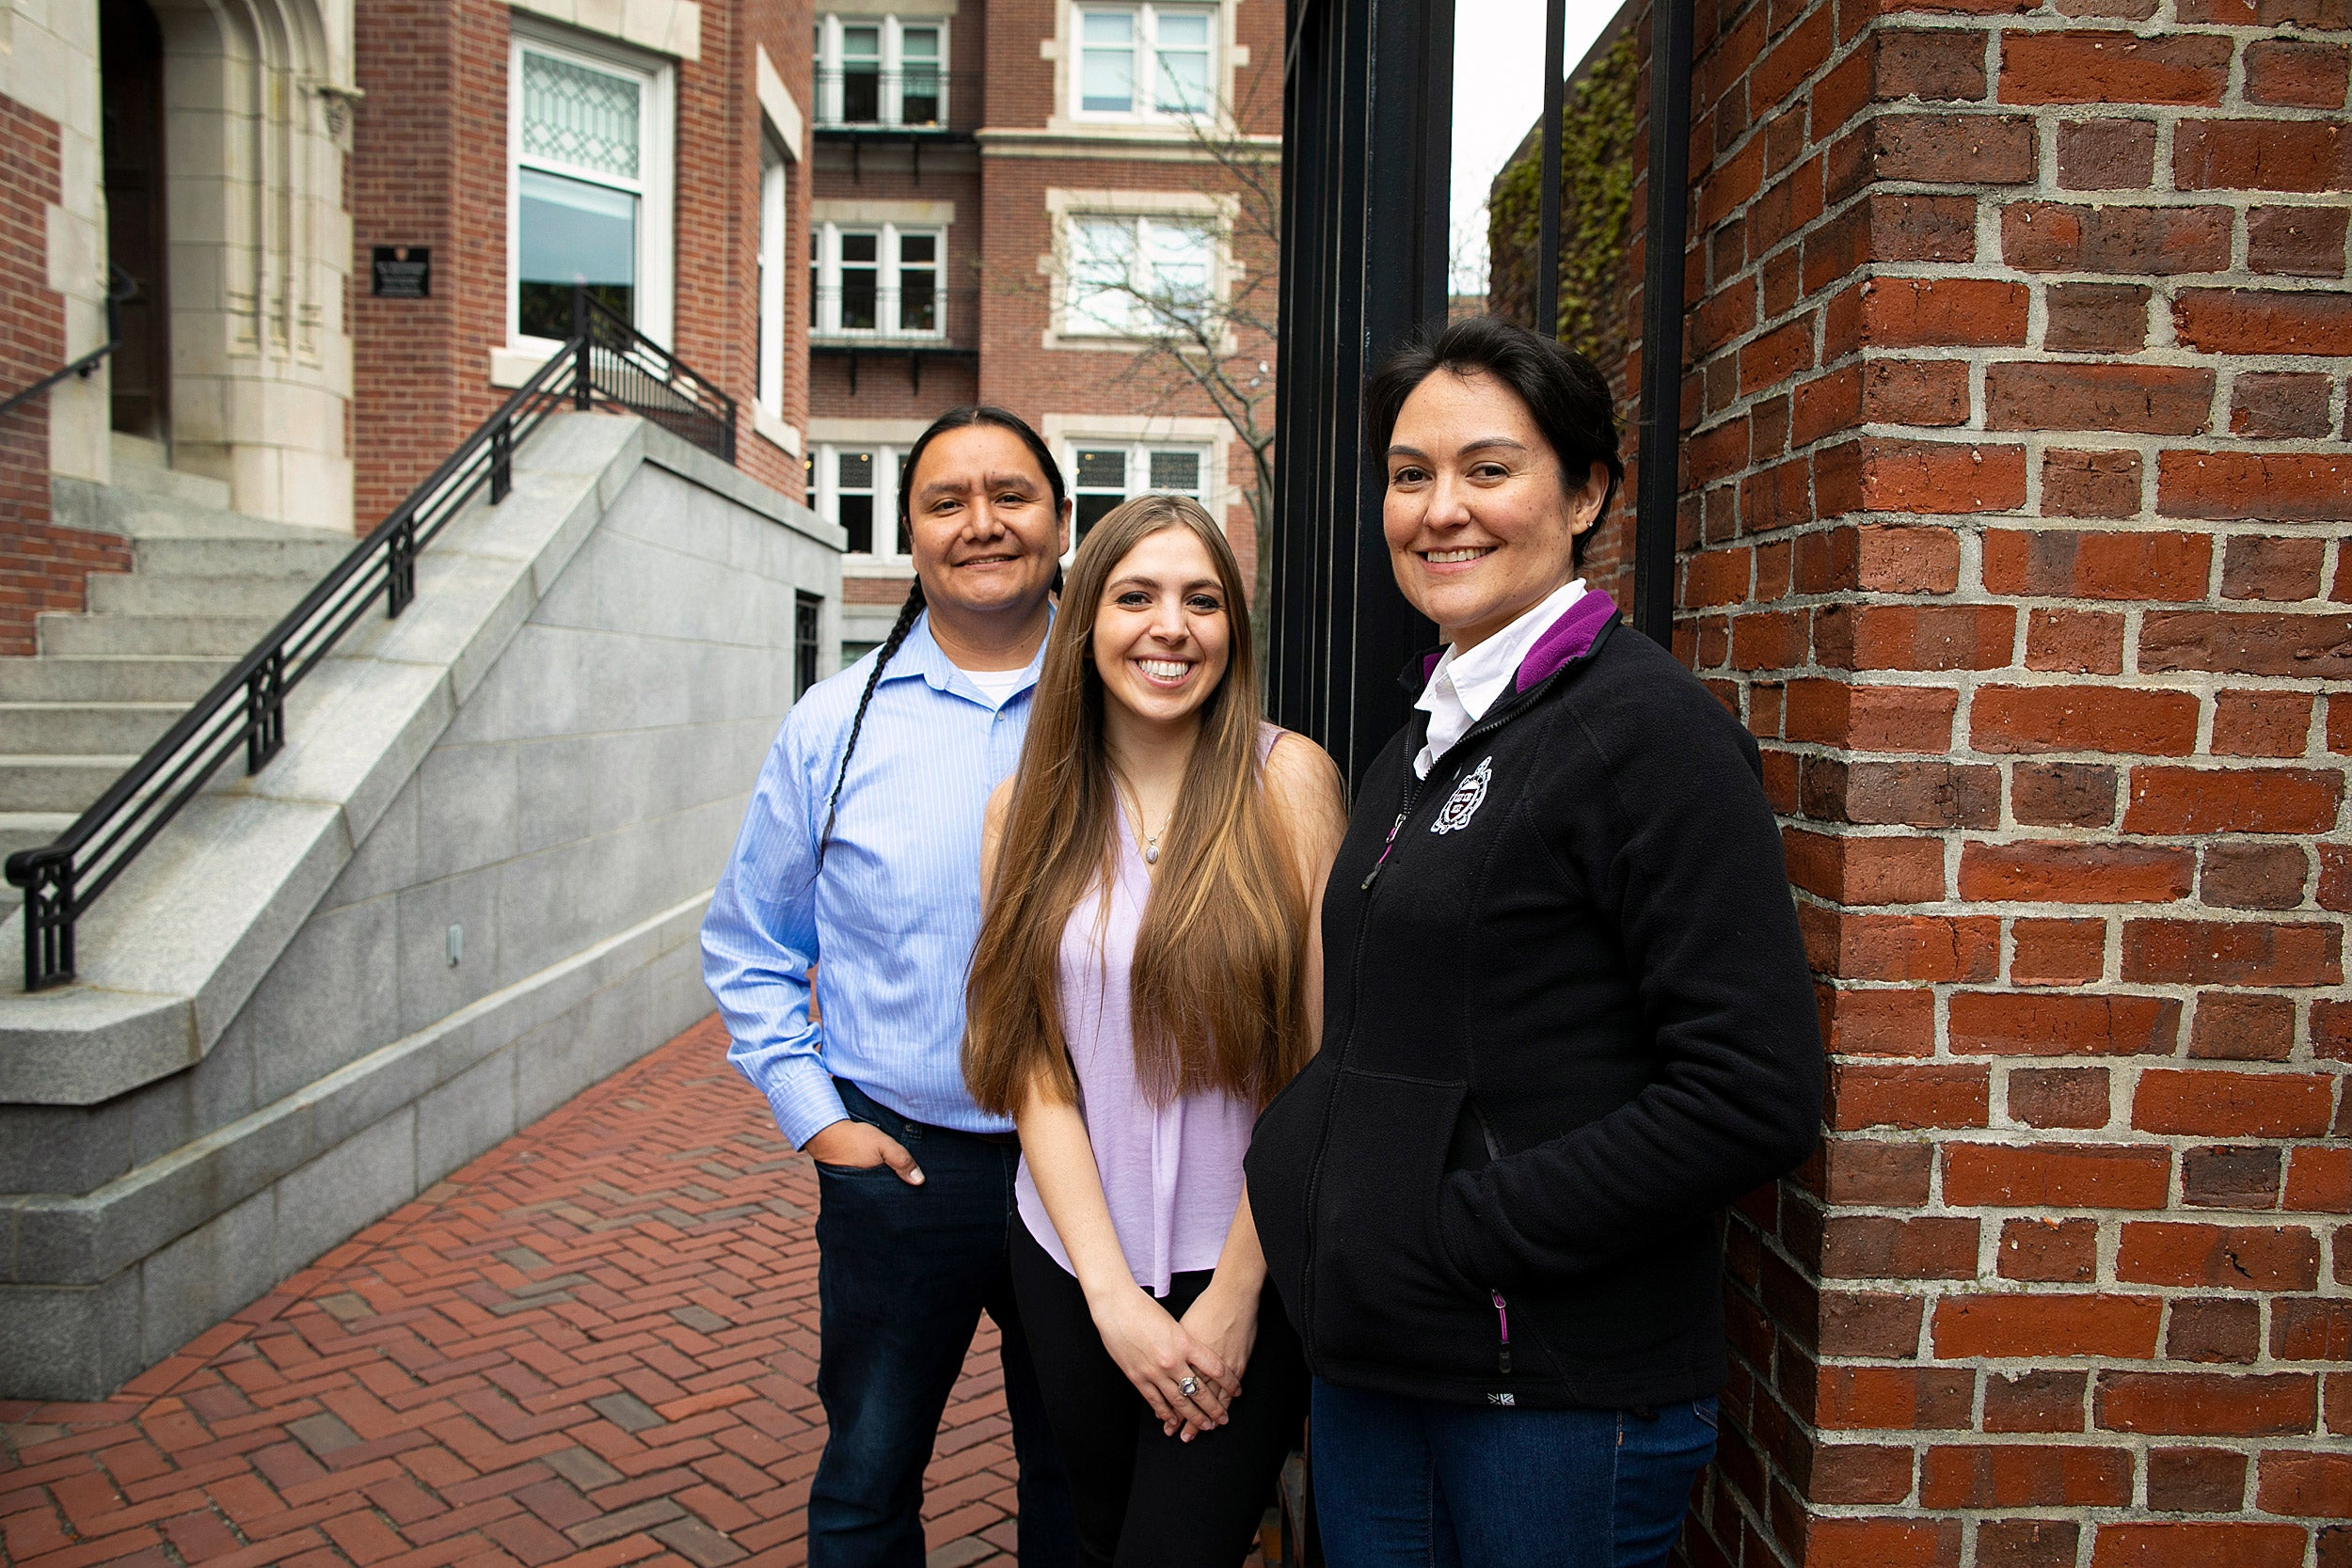 ason Packineau (from left), Sarah Sadlier, and Shelly Lowe.